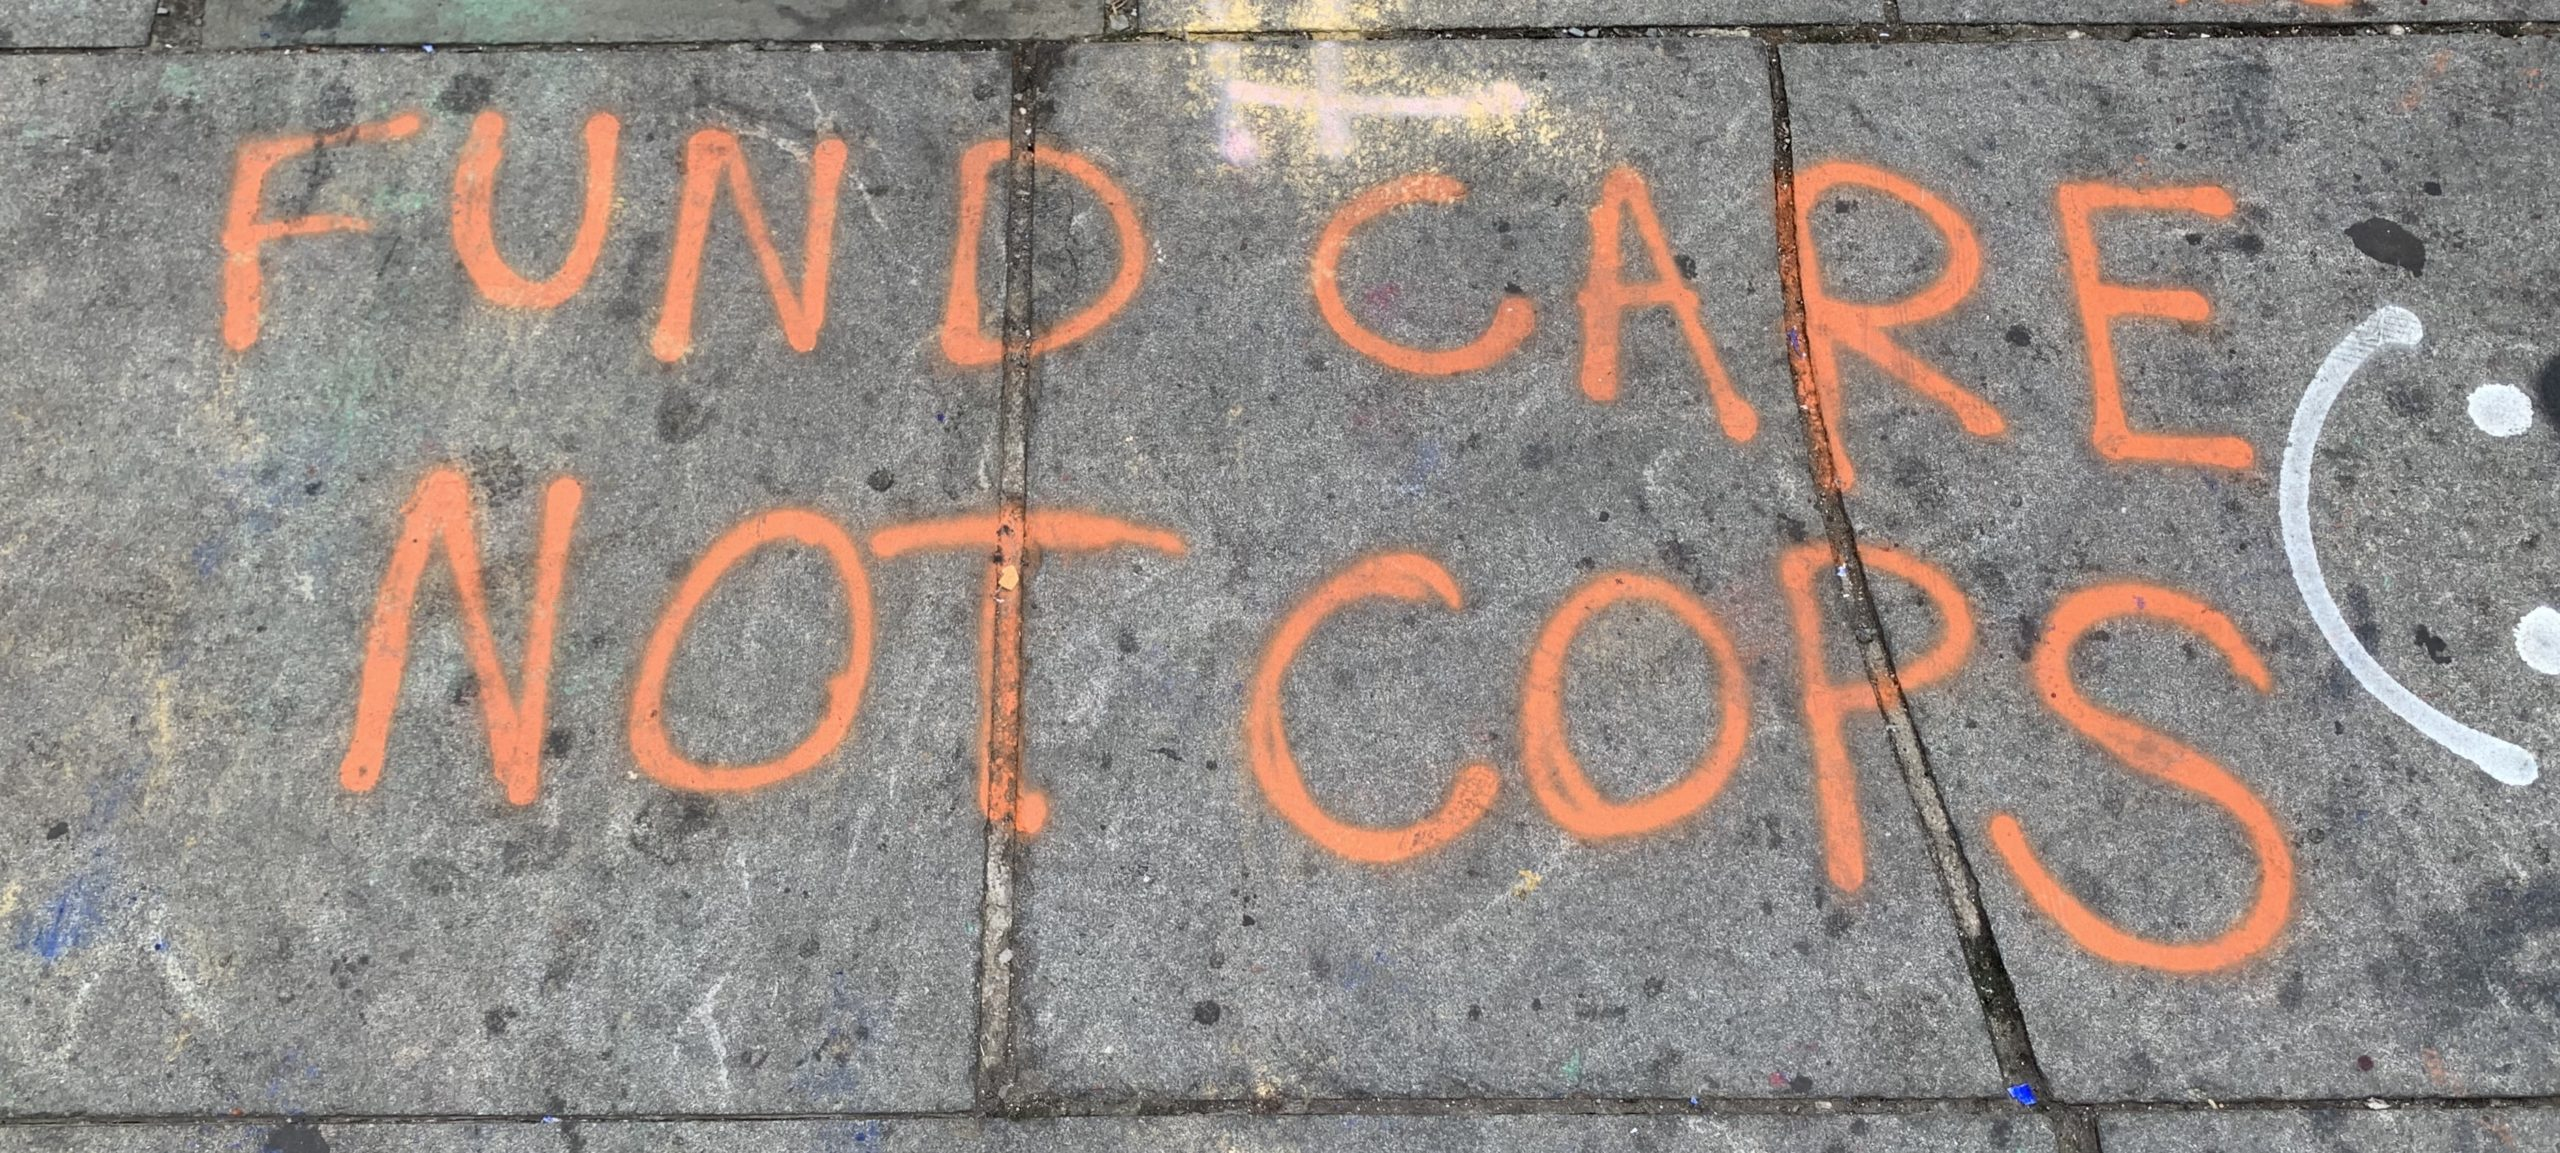 """A picture of a message spray-painted onto a concrete sidewalk. The message says, """"fund care not cops."""""""